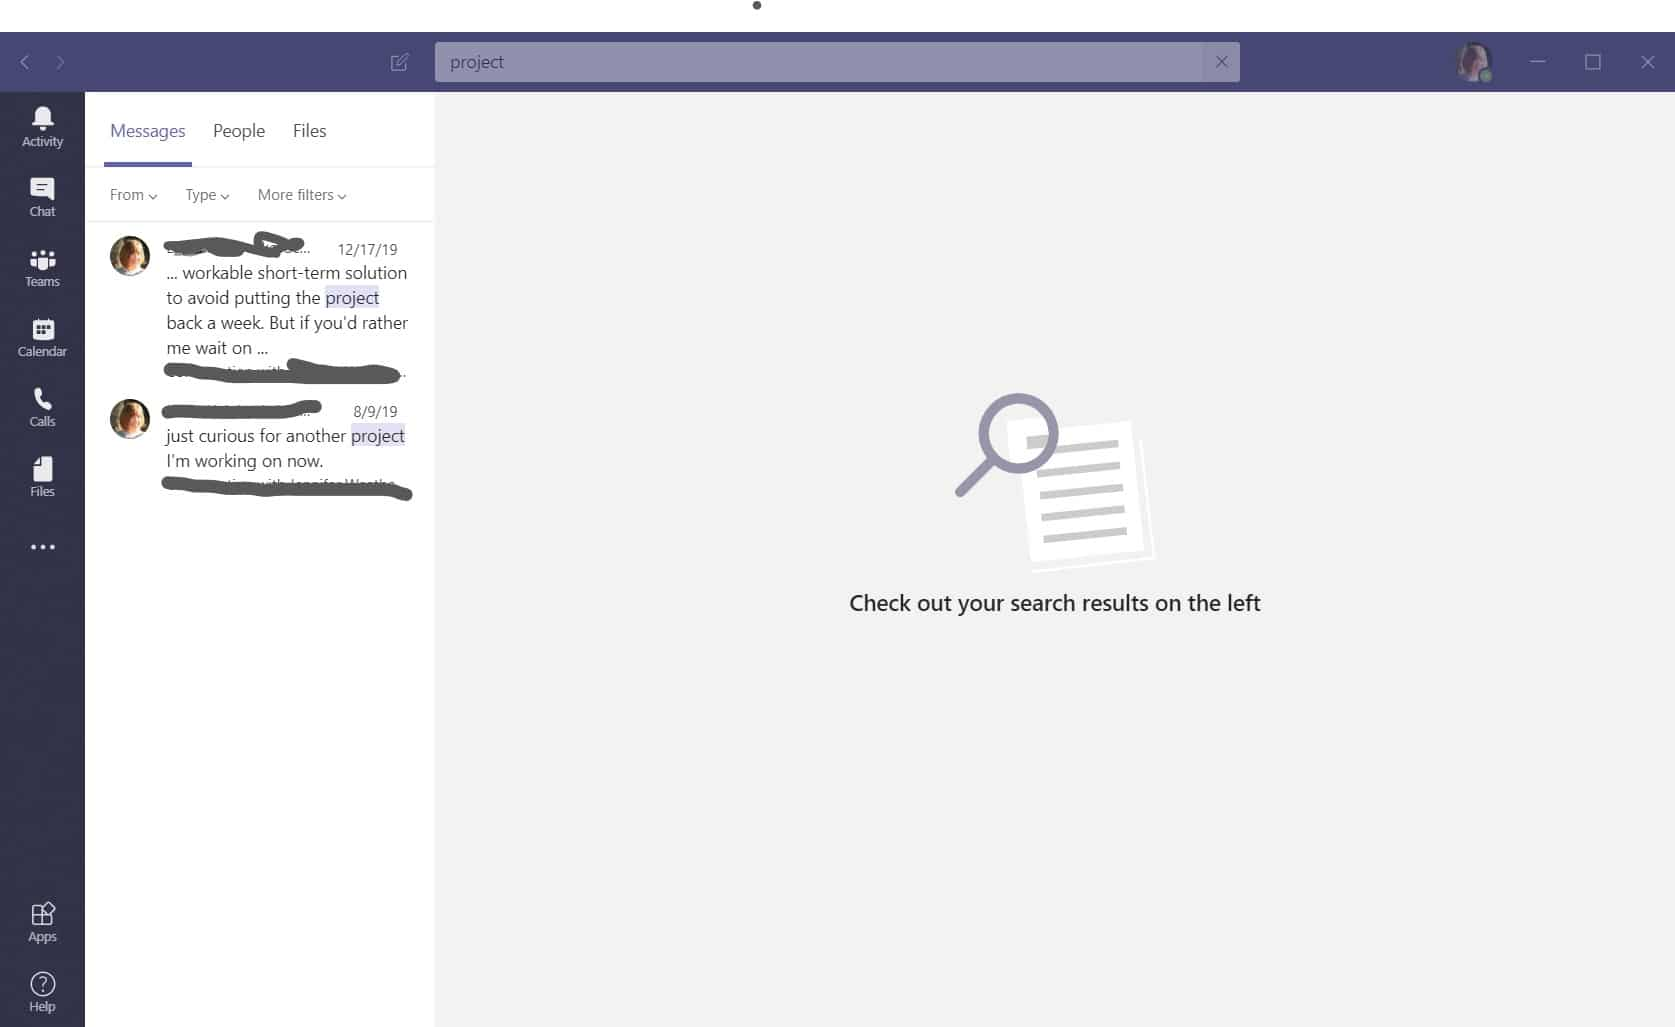 Conducting a search in Microsoft Teams